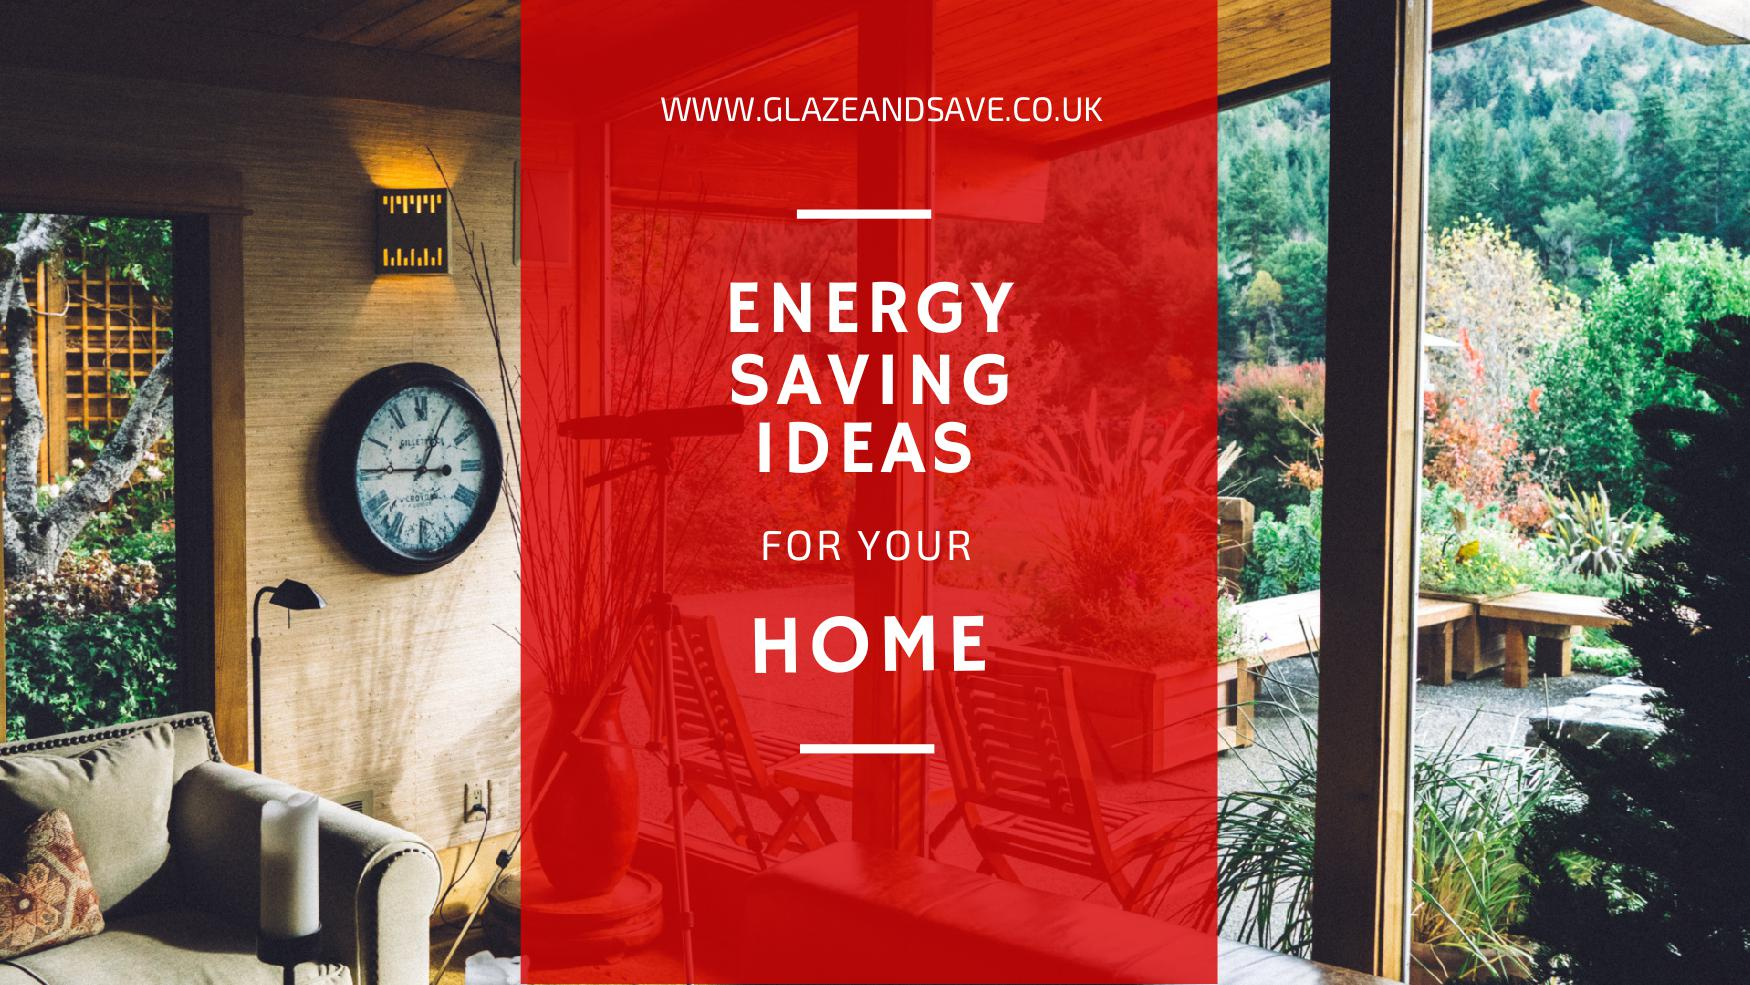 Energy saving ideas for your home from Glaze and Save bespoke magnetic secondary glazing and draught proofing in Perth, Scotland